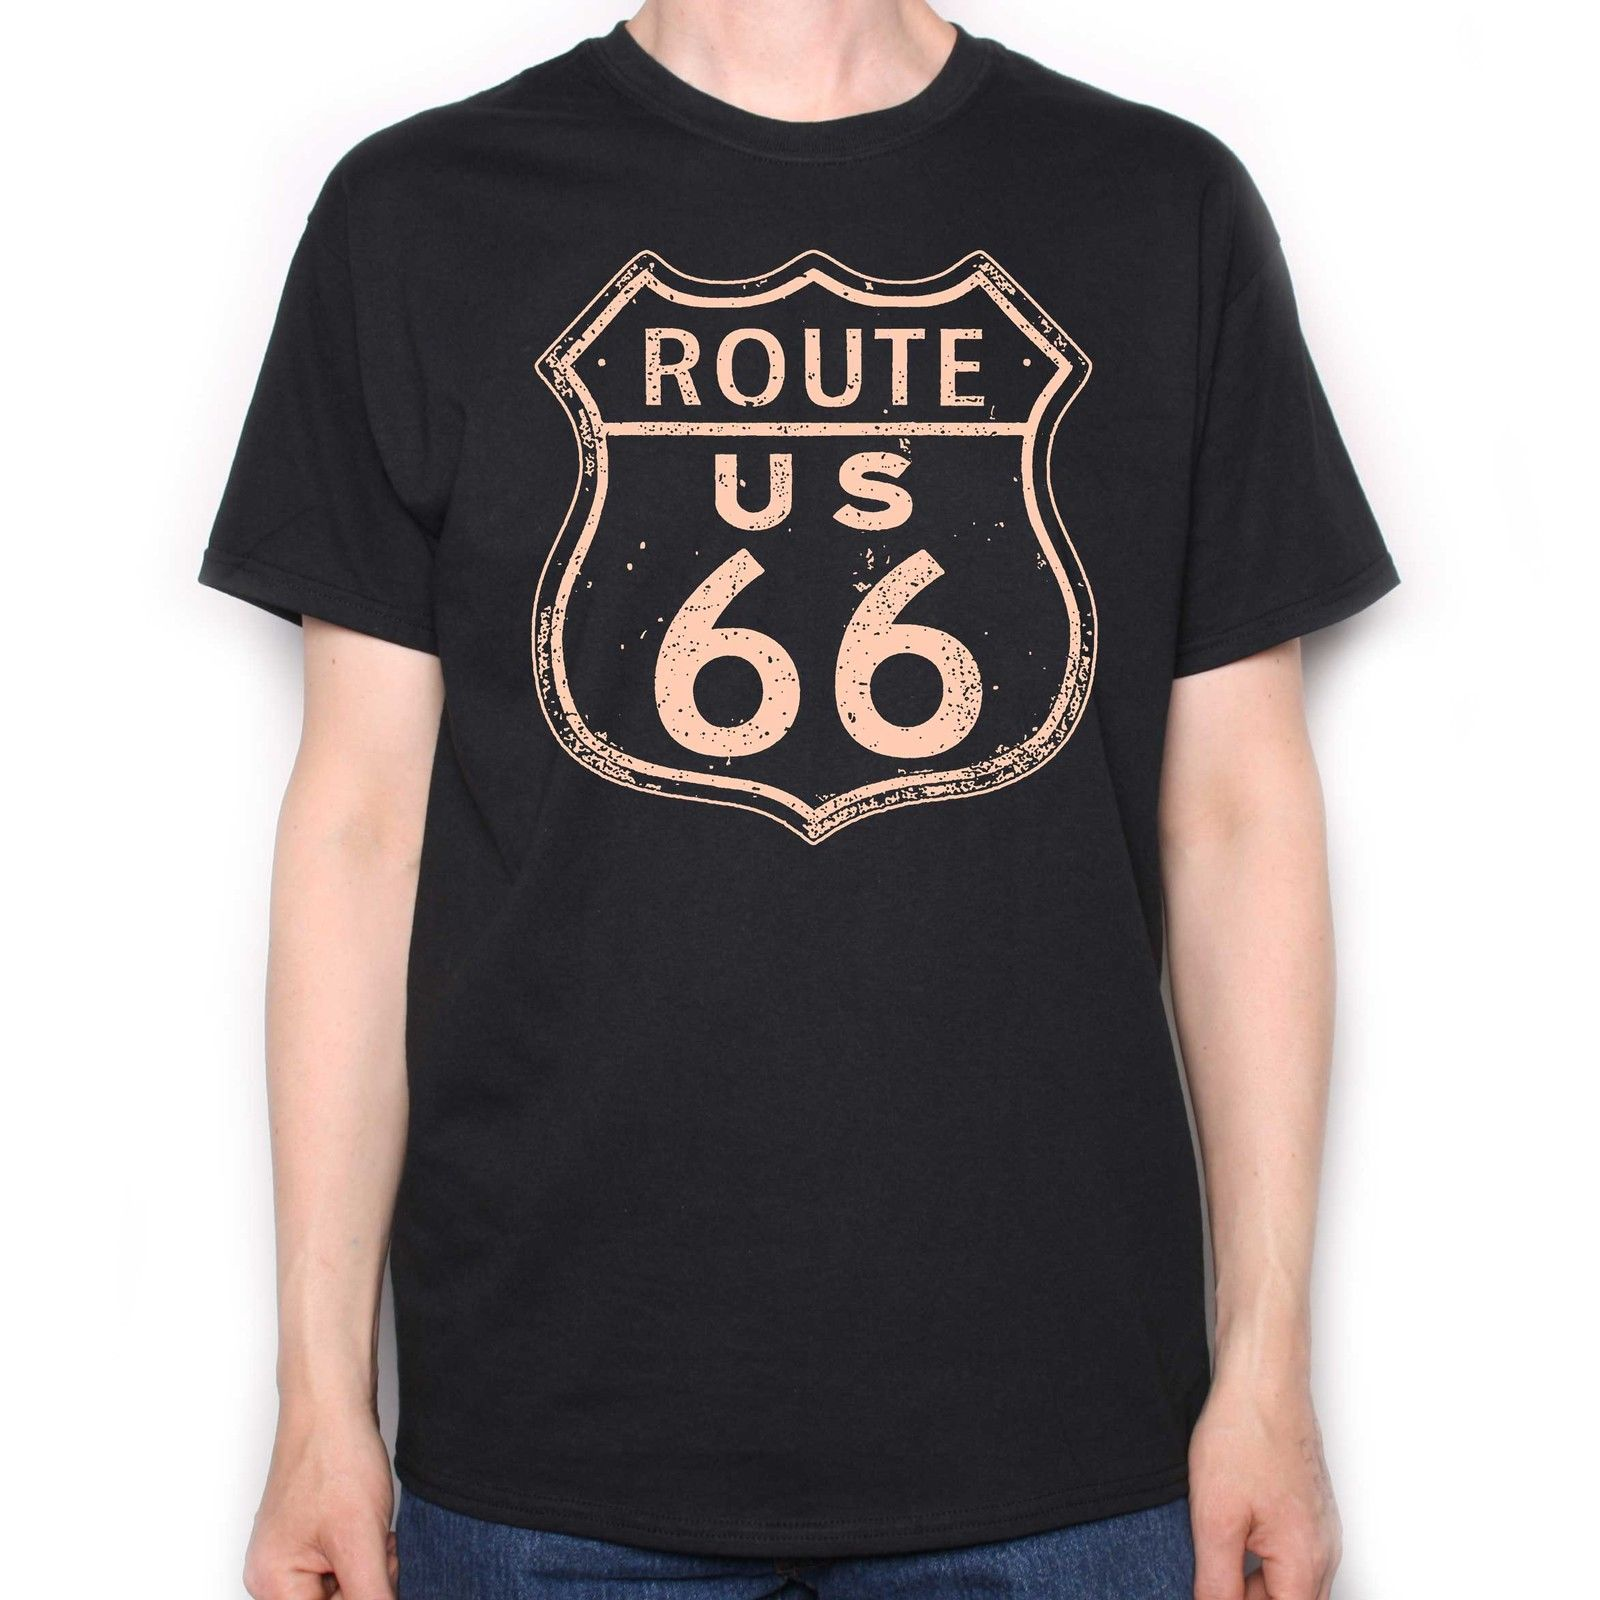 <font><b>ROUTE</b></font> <font><b>66</b></font> <font><b>T</b></font> <font><b>SHIRT</b></font> - MUSCLE CAR CUSTOM BIKE CHOPPER BOBBER CHEVY JAMES DEAN 2019 fashion <font><b>t</b></font> <font><b>shirt</b></font>,100% cotton tee <font><b>shirt</b></font> image